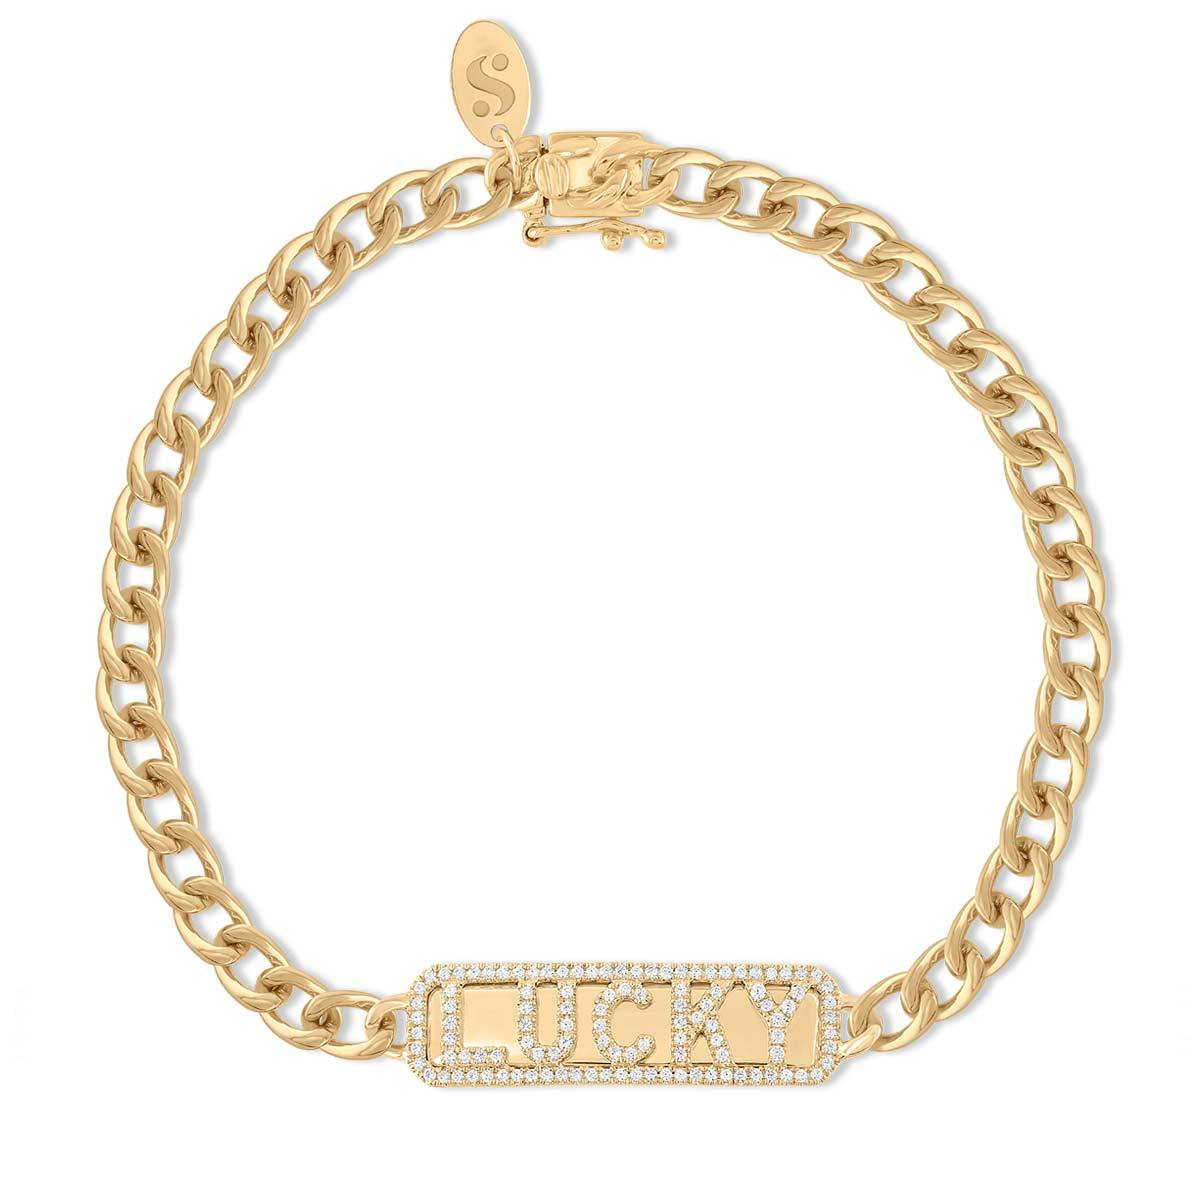 'Lucky' ID Bracelet - Serena Williams Jewelry